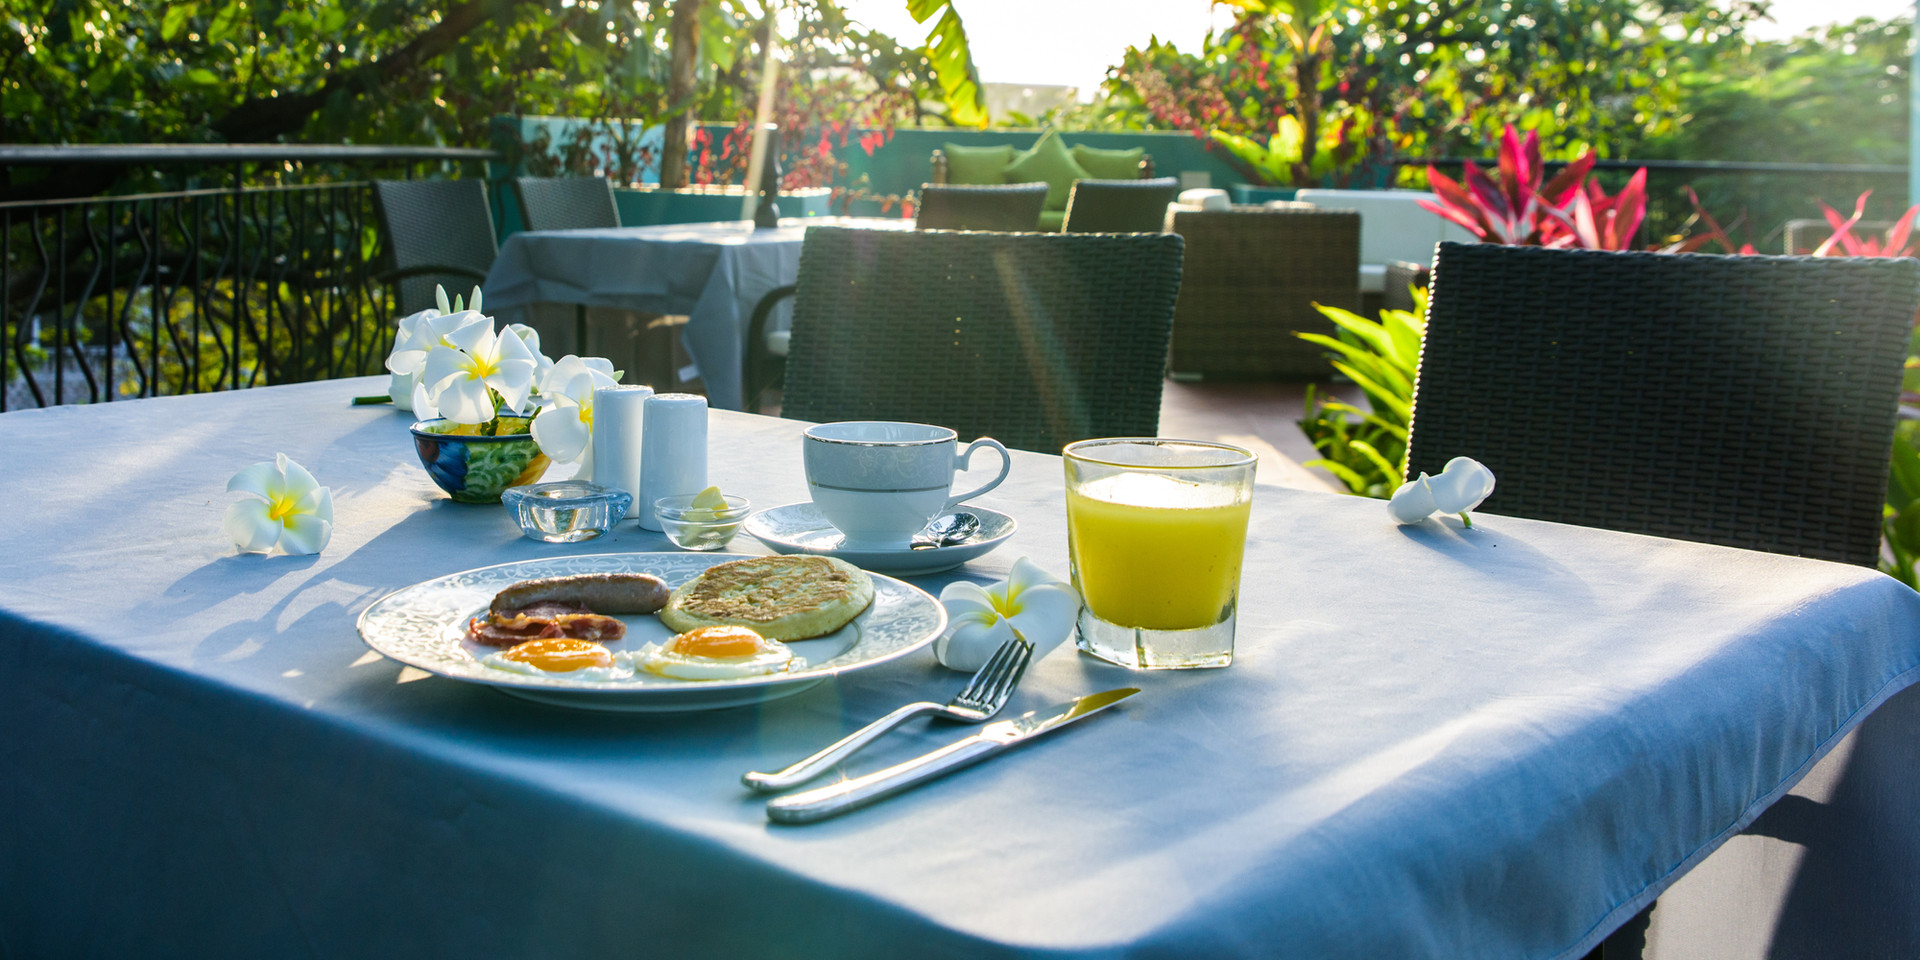 Breakfast with the sunrise